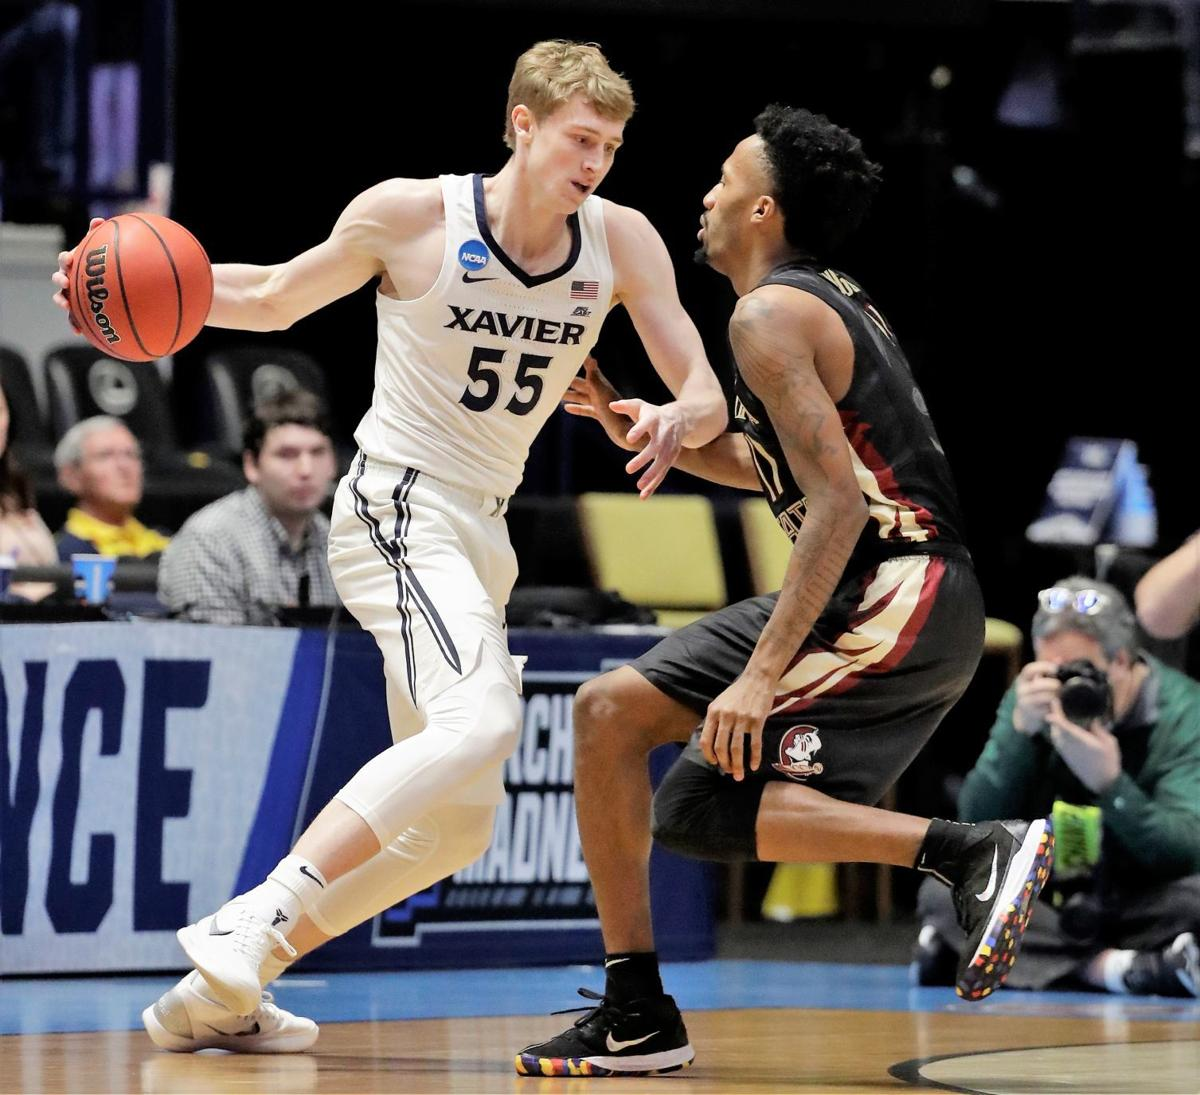 b93a0032b09 Lakeville s JP Macura signs with Charlotte Hornets